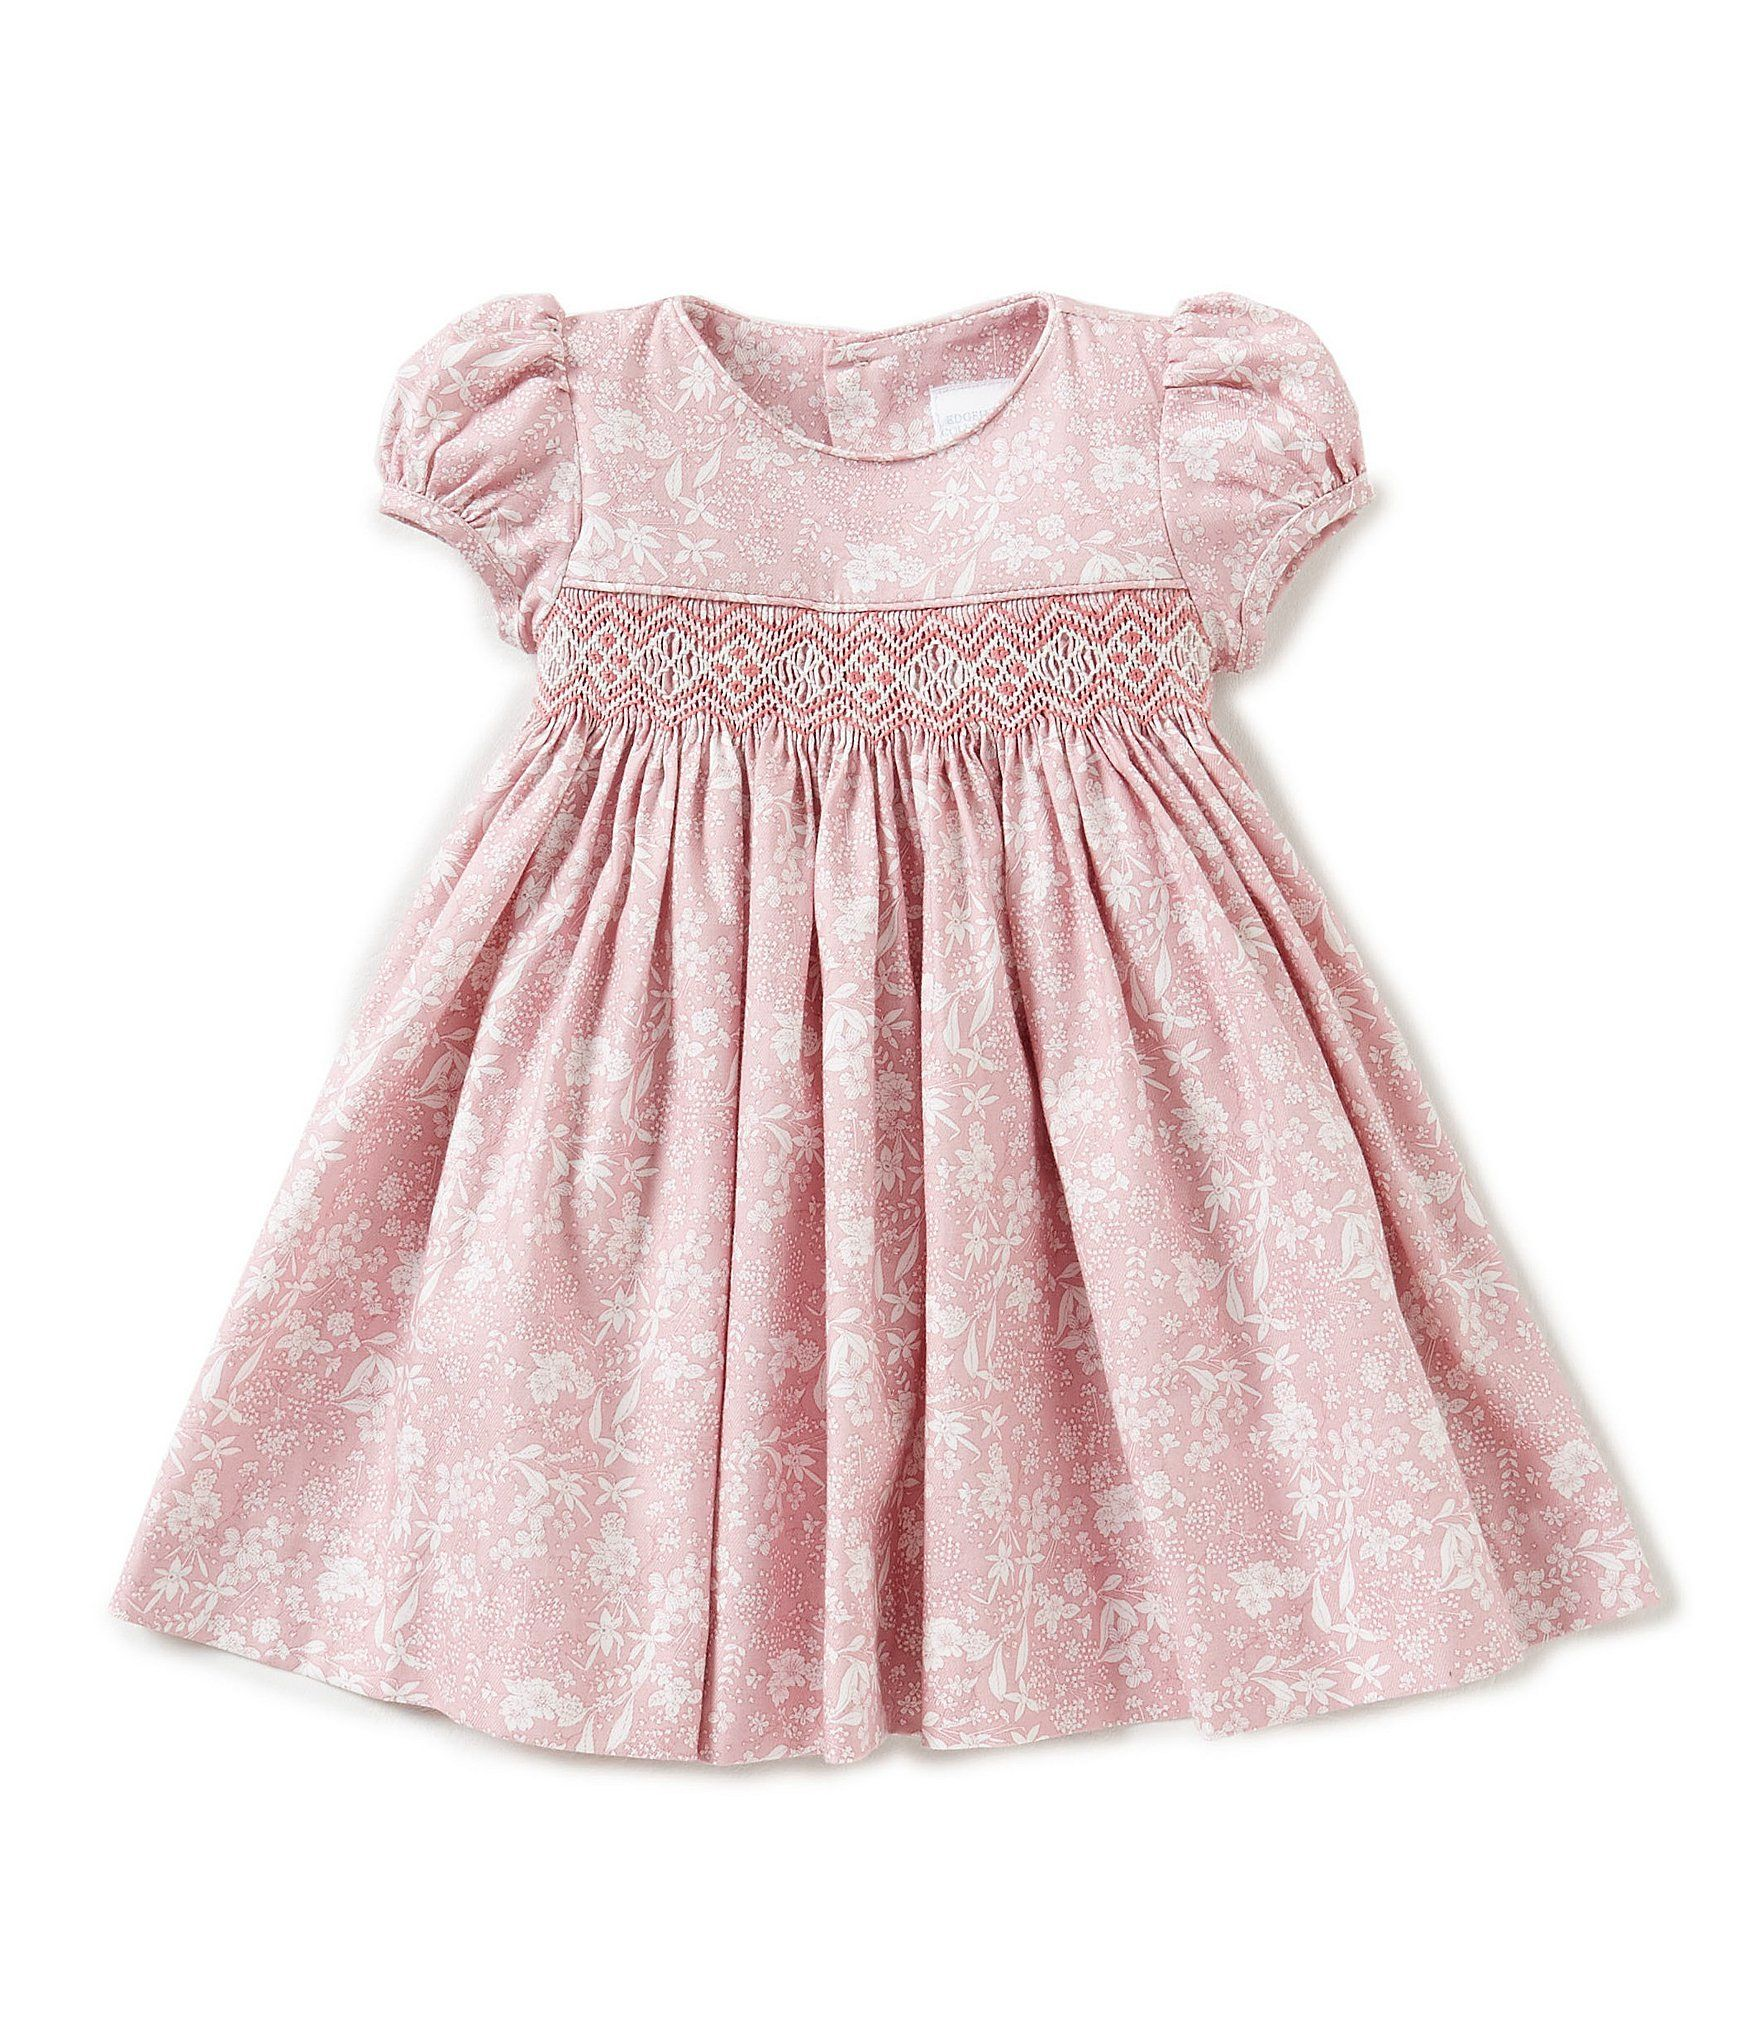 Edgehill Collection Baby Girls 3 24 Months Floral Print Smocked Dress